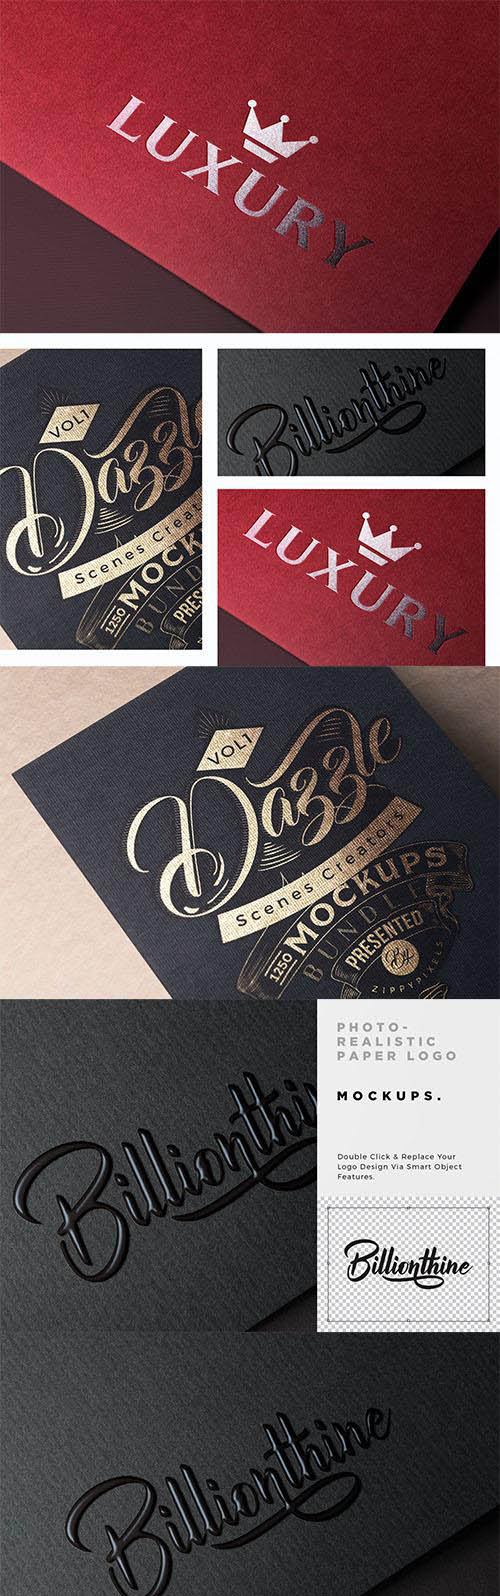 Photorealistic Paper Logo Mockups PSD » Daz3D and Poses